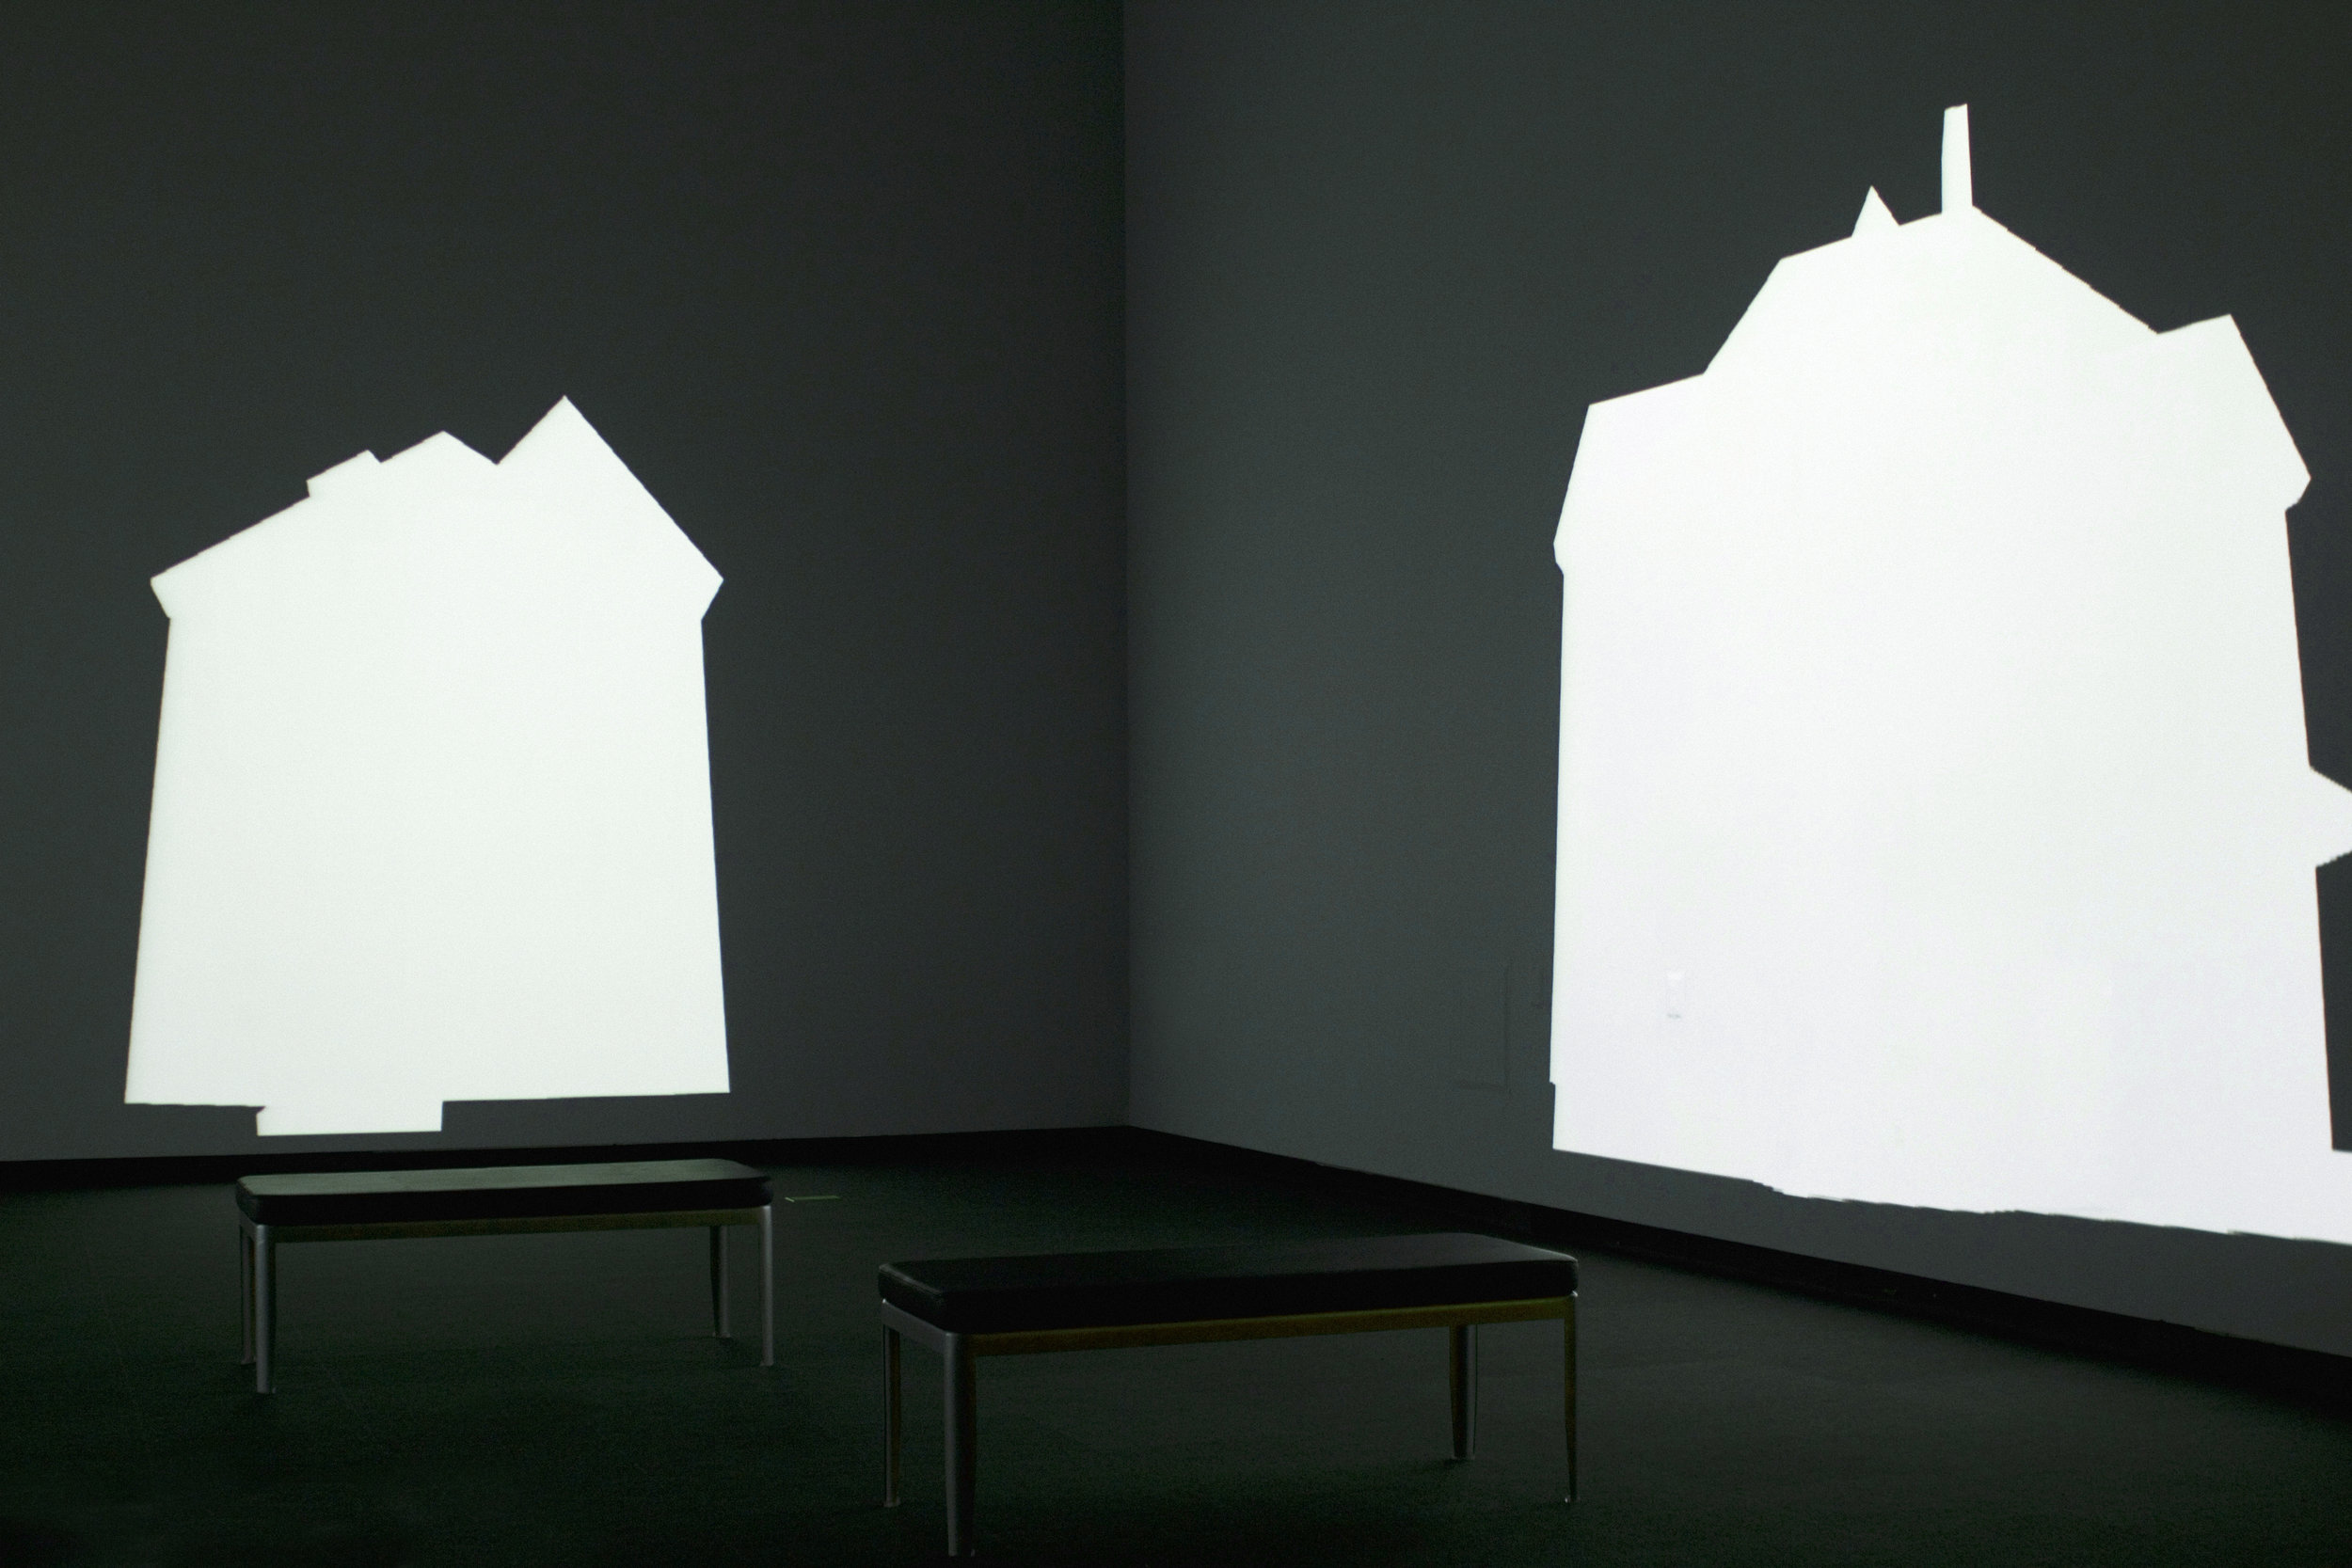 LAST HOUSE.   Carl Lee, 2010 (16:30 loop, 3-channel projection, stereo audio, dimensions variable)